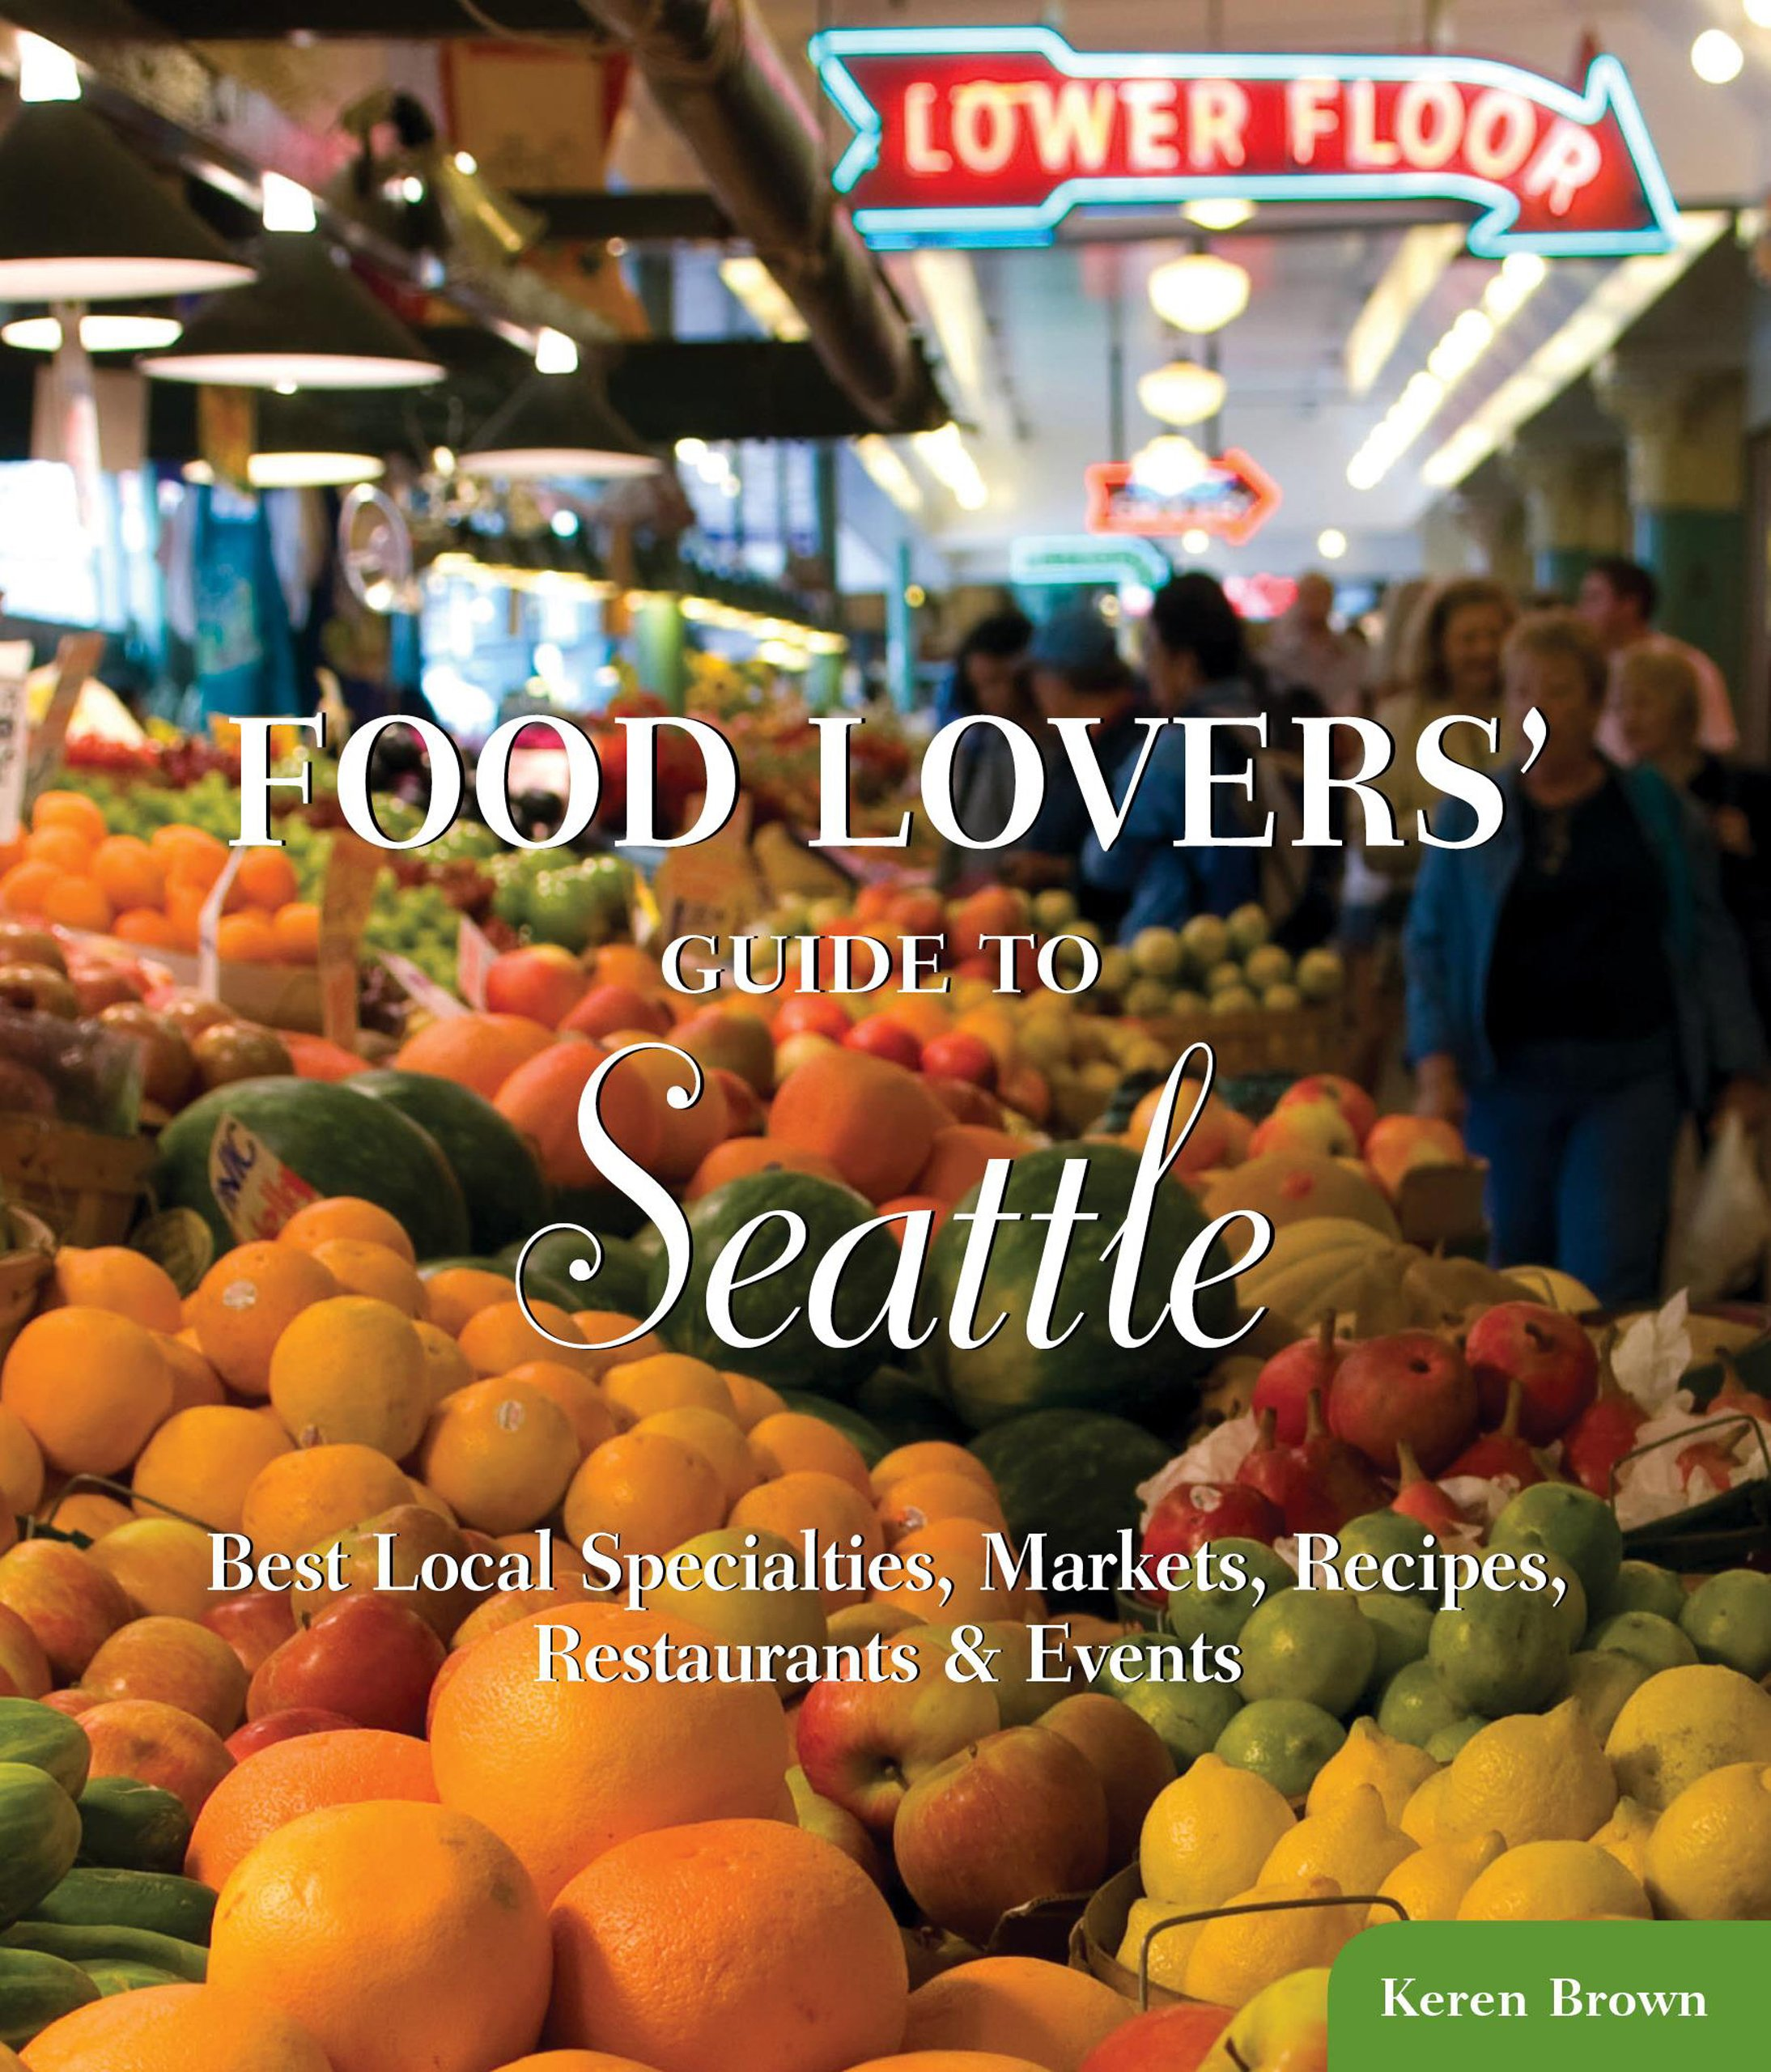 Food lovers guide to seattle best local specialties markets food lovers guide to seattle best local specialties markets recipes restaurants events food lovers series keren brown 9780762770175 amazon forumfinder Gallery